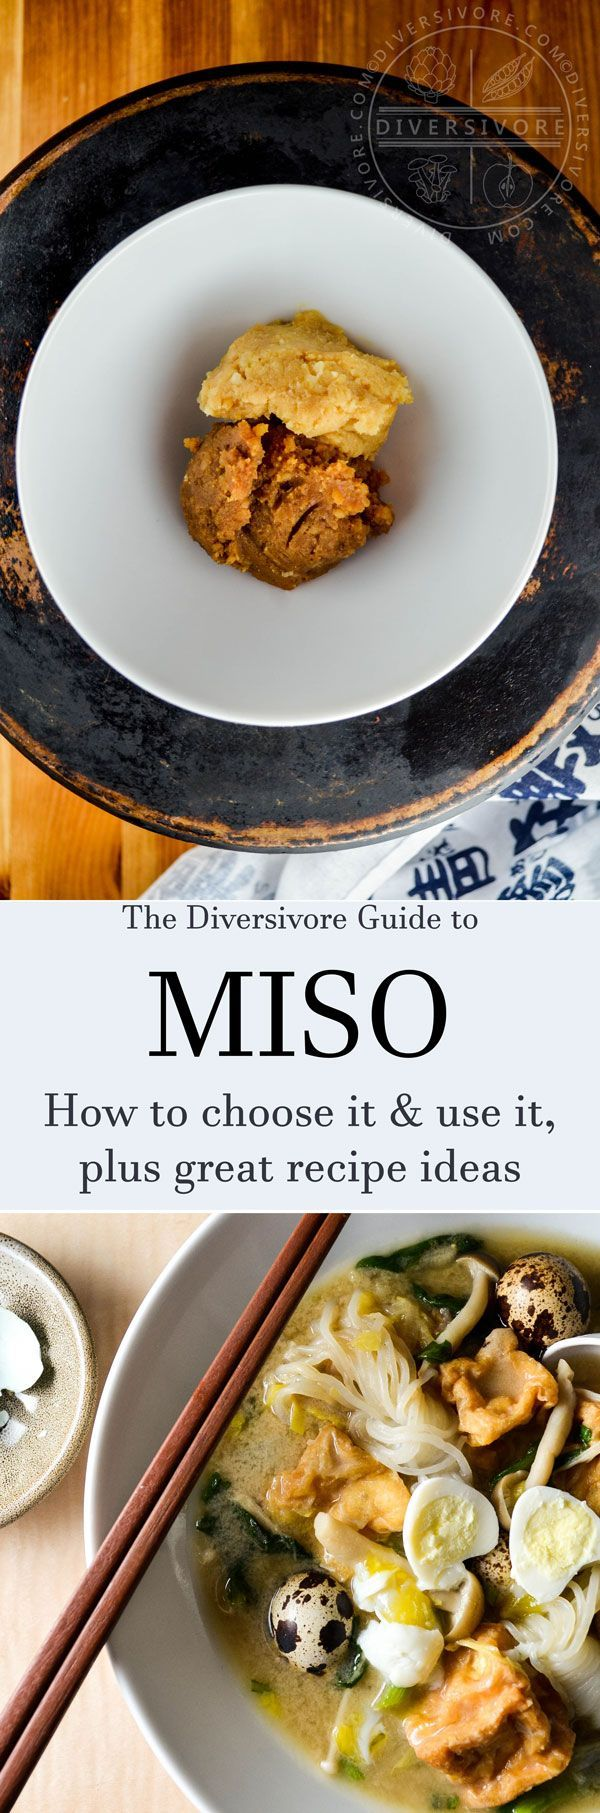 Diversivore's comprehensive guide to miso, covering a wide range of varieties and types, plus tips on finding, choosing, and using it.